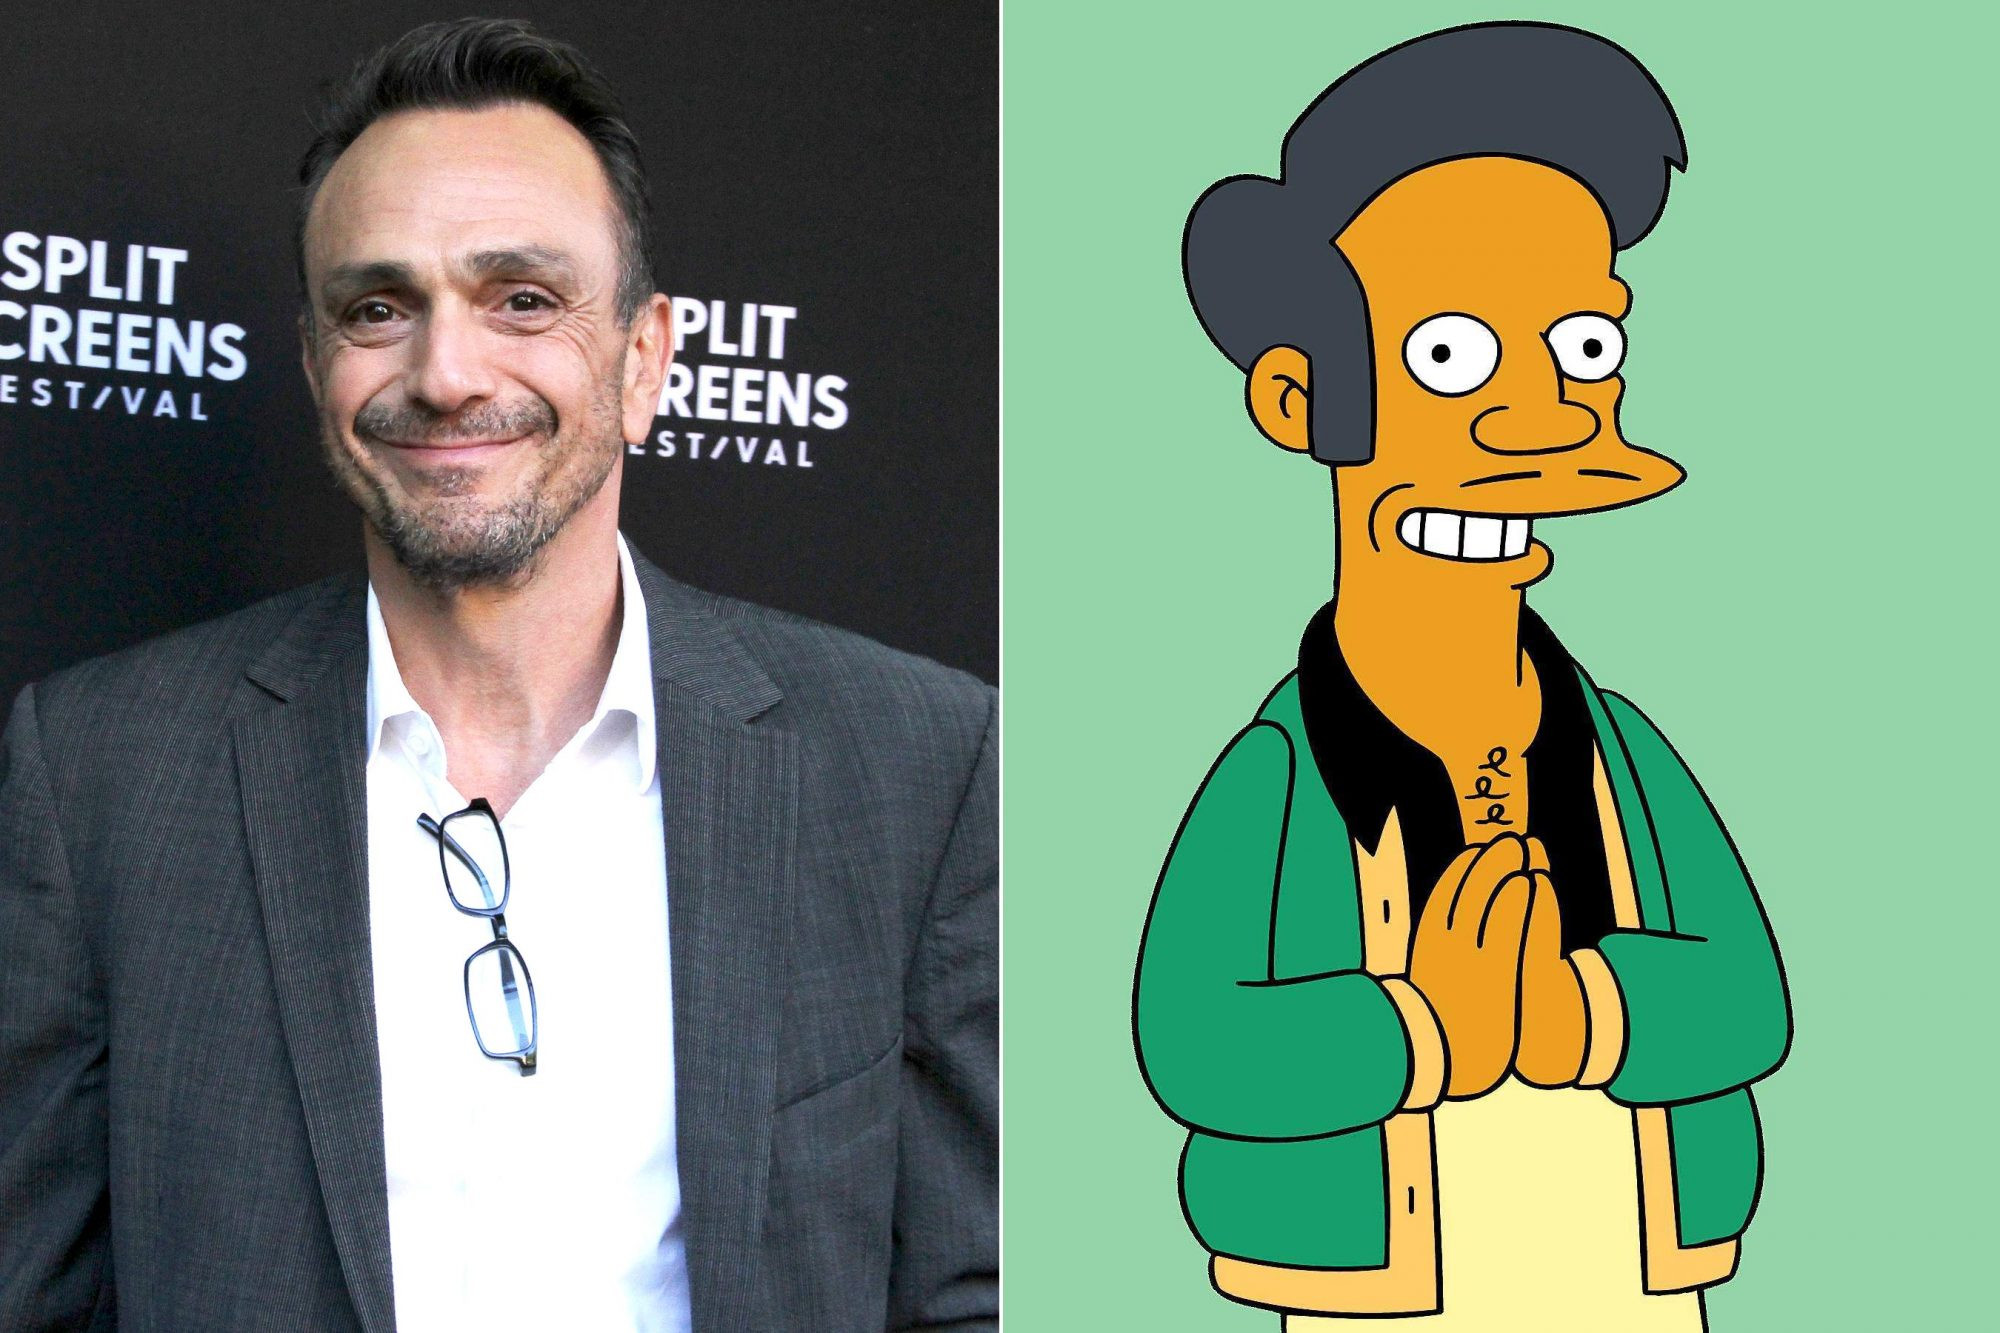 The Simpsons actor, Hank Azaria apologises for his part in